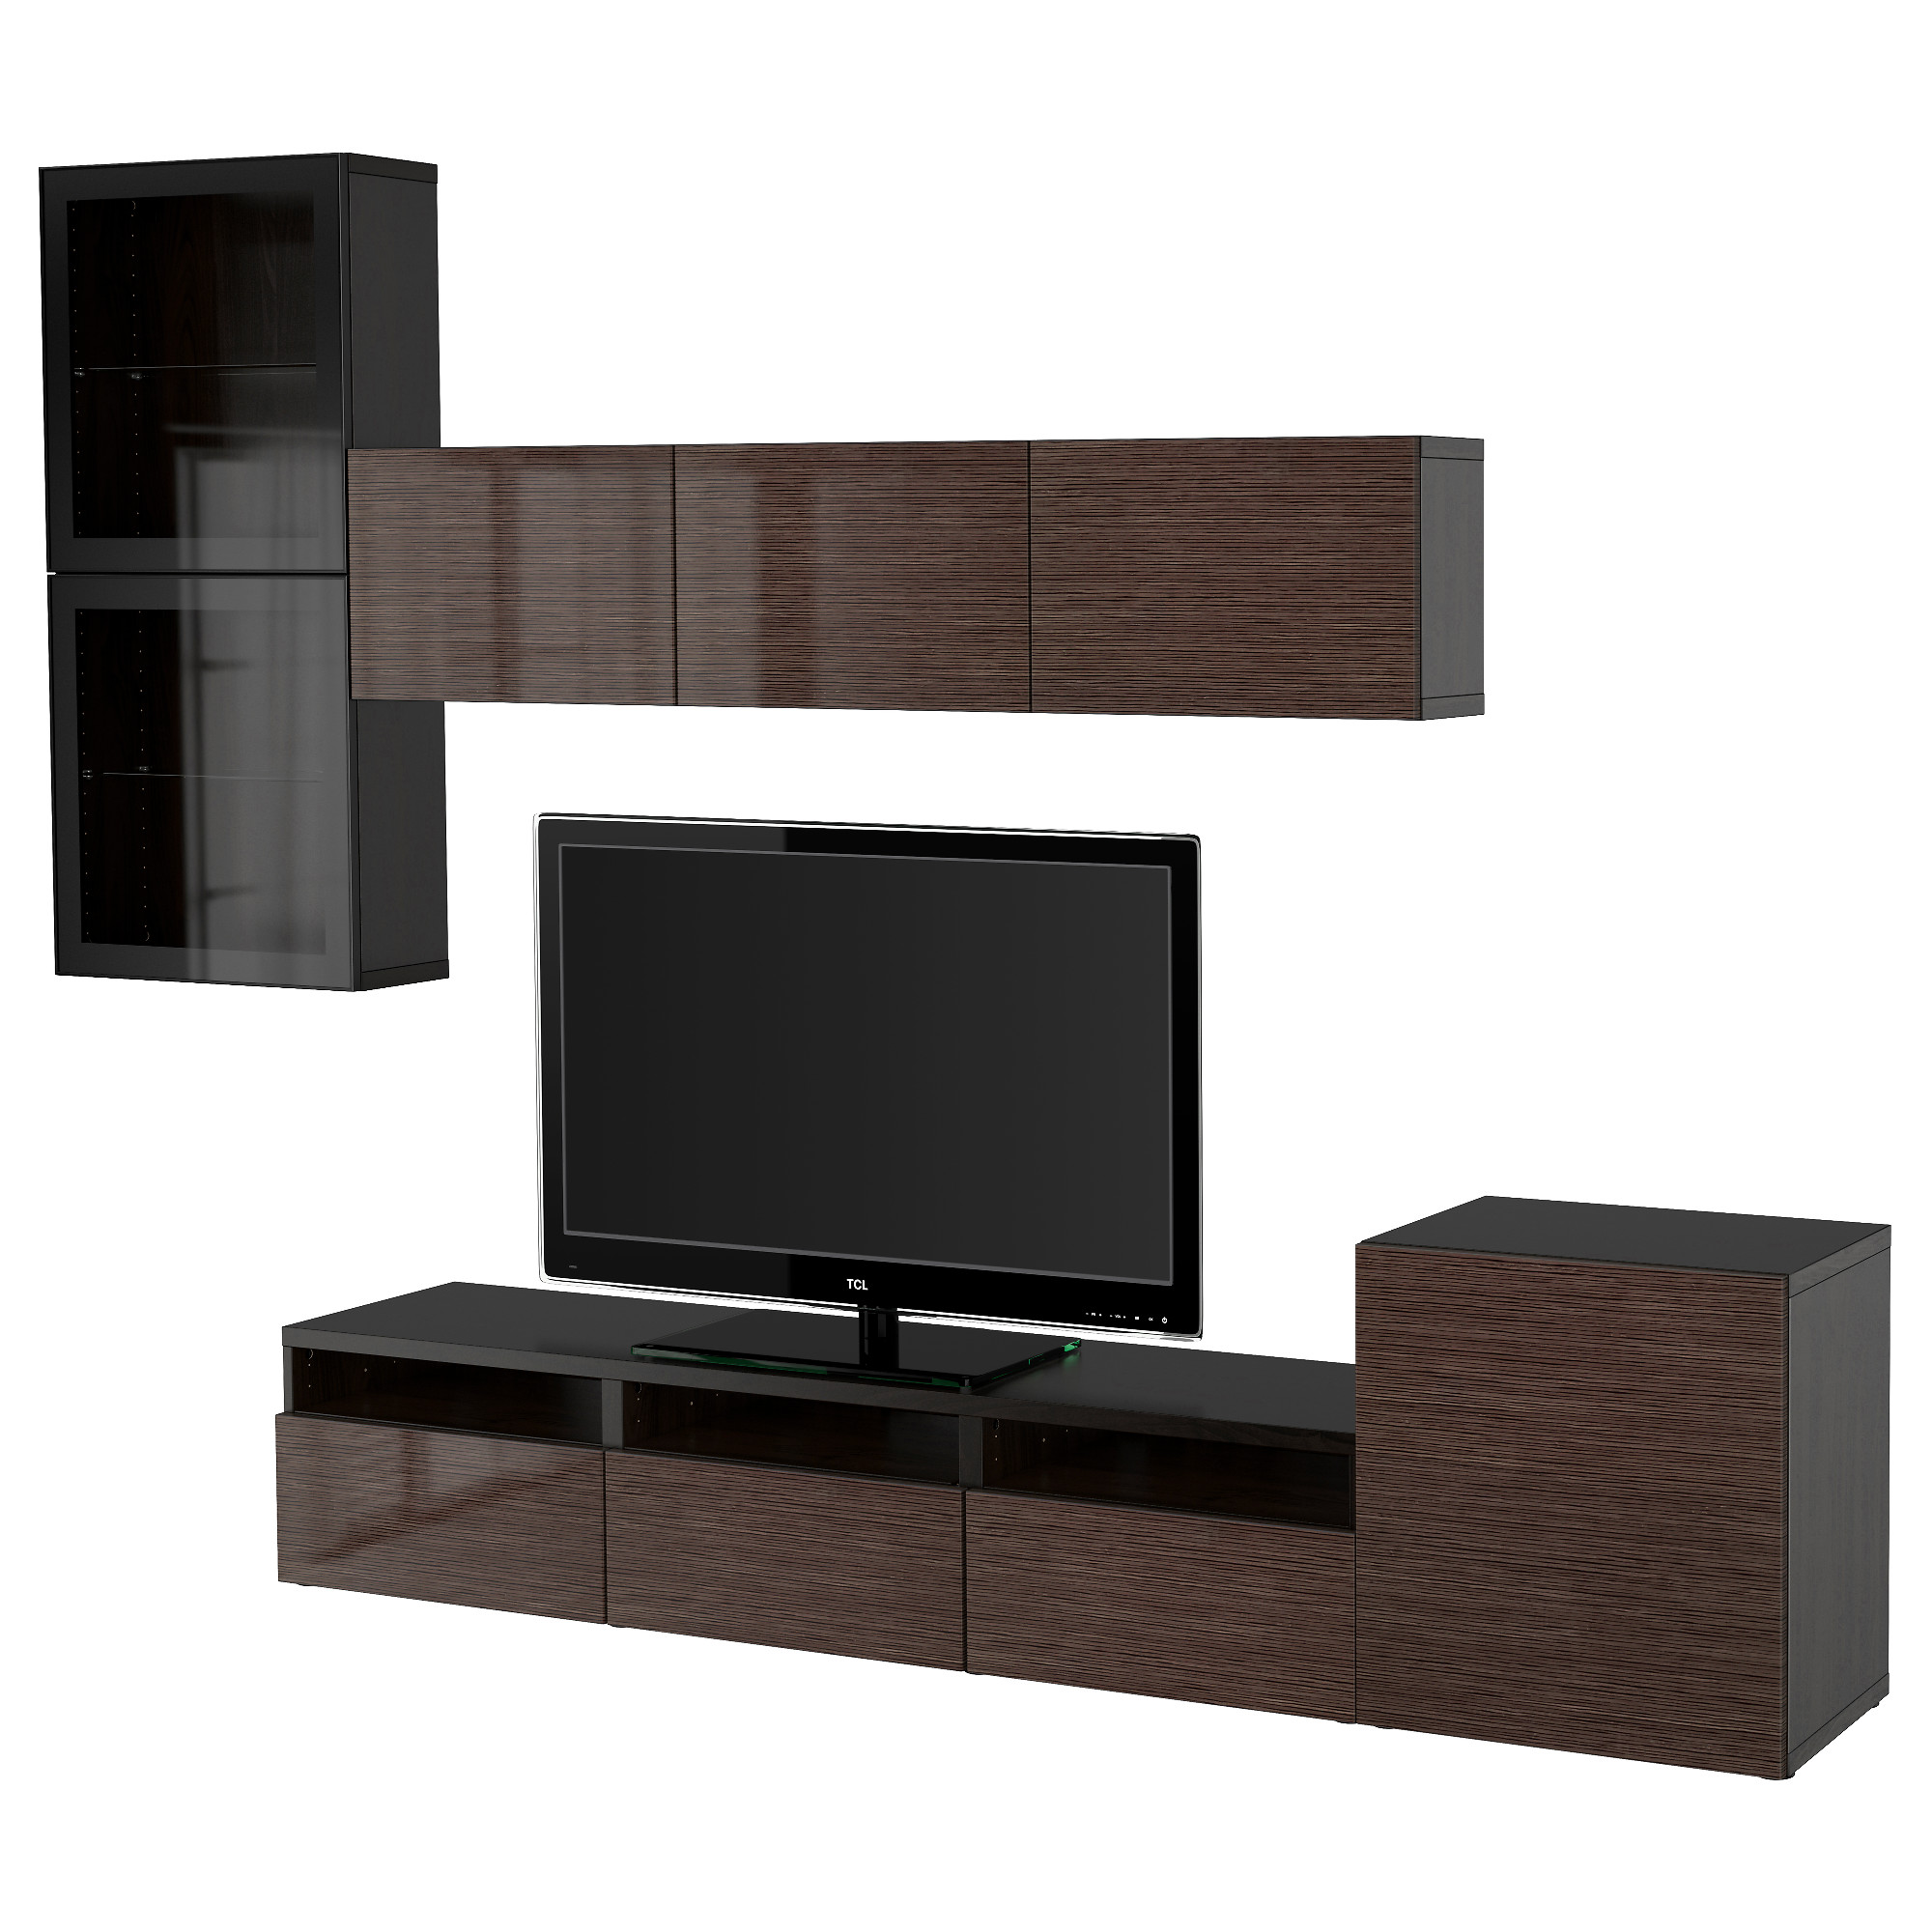 ikea tv stand glass doors images glass door interior doors